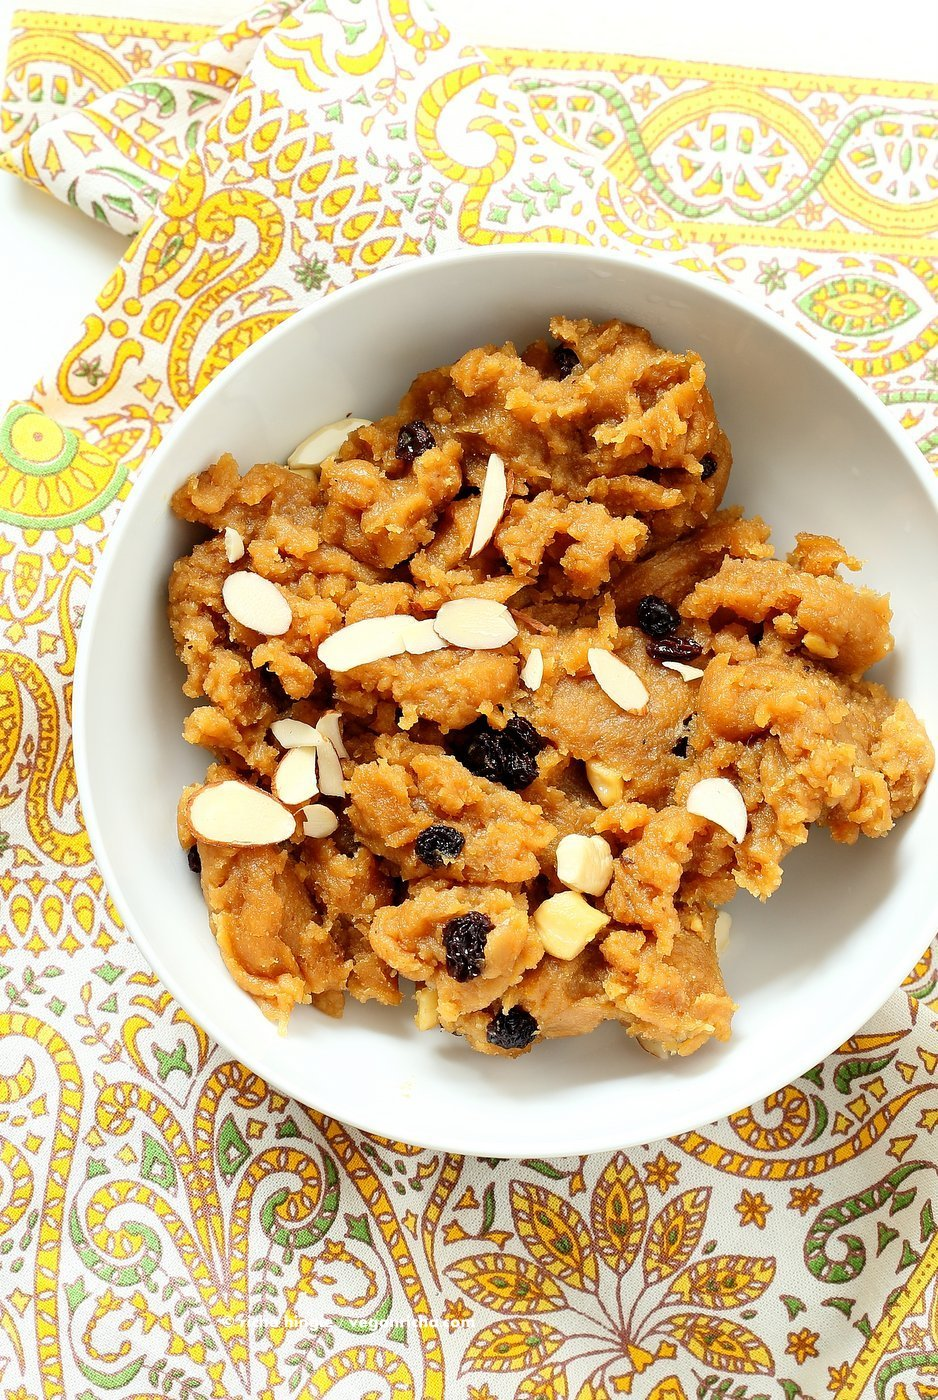 Besan Halwa is a fudgy dessert made with chickpea flour or besan. Chickpea flour Spoon fudge with cardamom and nuts. Use other grain or bean or lentil flours for variation. Vegan Gluten-free Grain-free Dessert Recipe. | VeganRicha.com